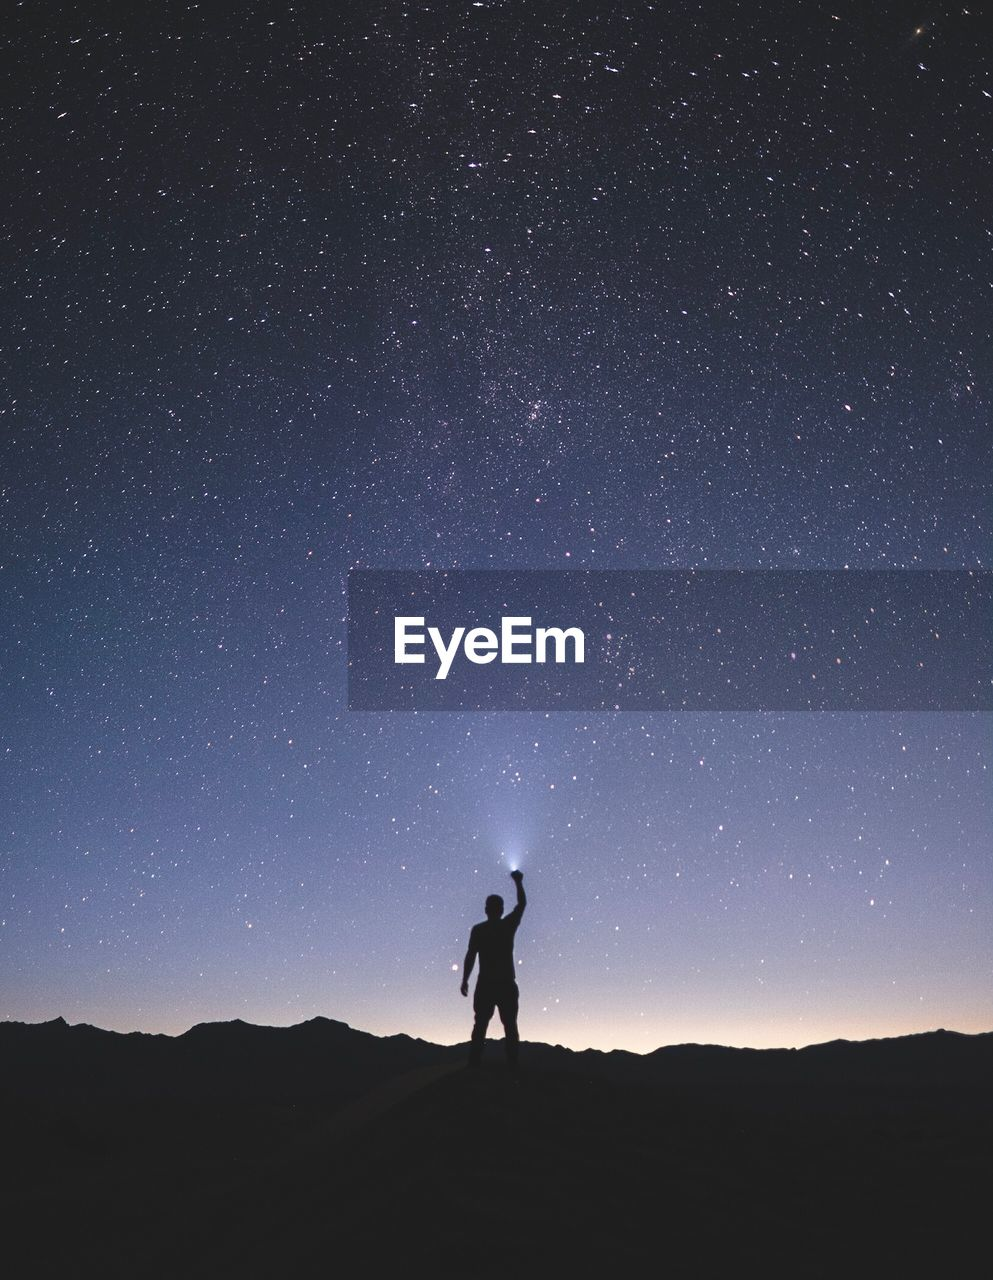 sky, star - space, silhouette, night, standing, astronomy, scenics - nature, space, beauty in nature, one person, nature, leisure activity, land, star, galaxy, men, full length, star field, real people, milky way, arms raised